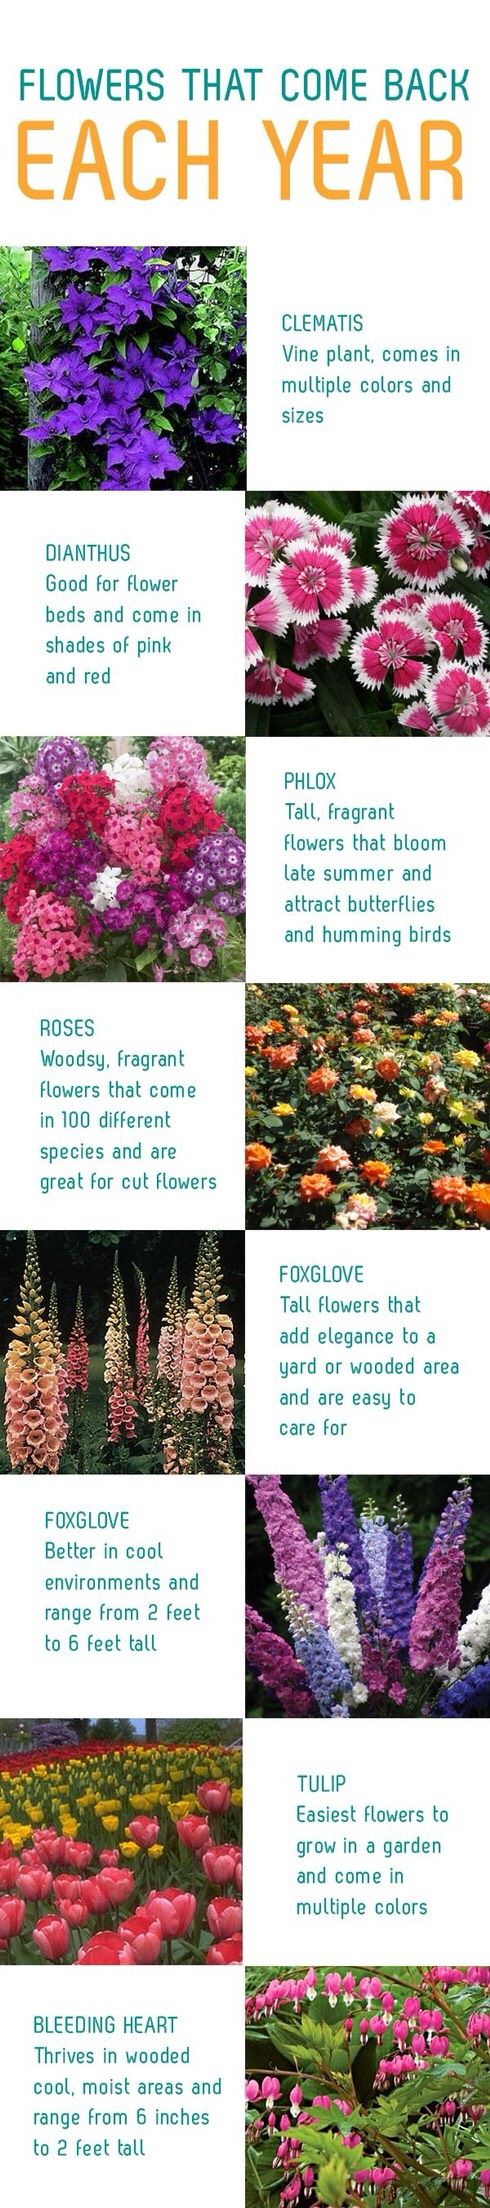 flowers that come back every year musely tip gardening